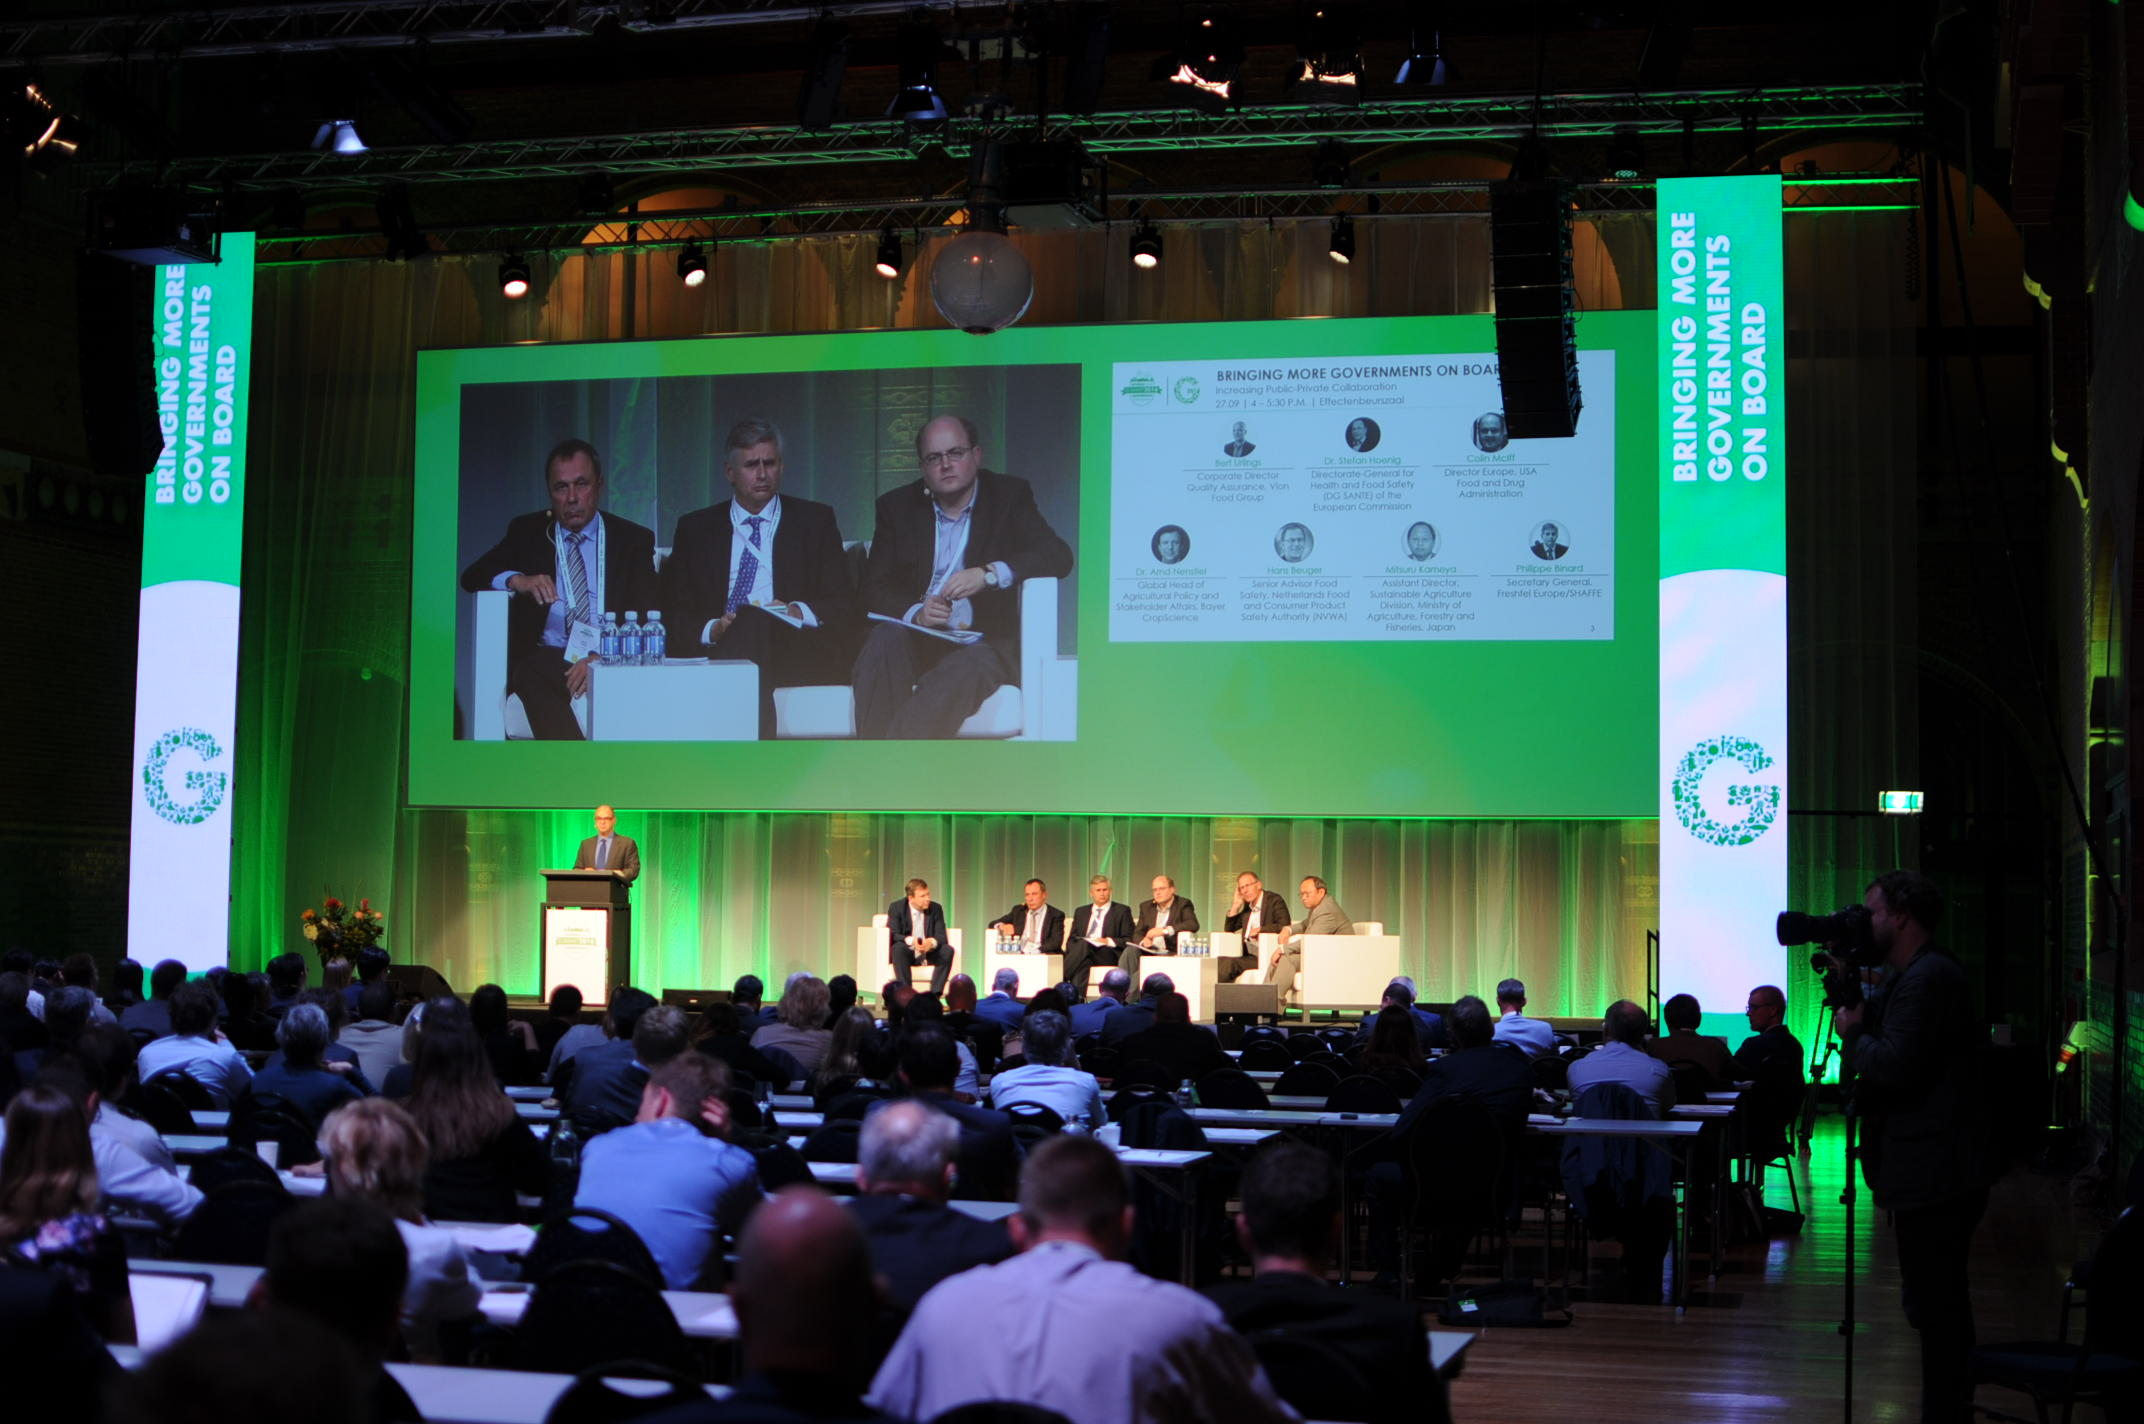 At its Amsterdam summit on September 27, GLOBALG.A.P. celebrated 20 years of global partnership and set the course for the future of farm certification